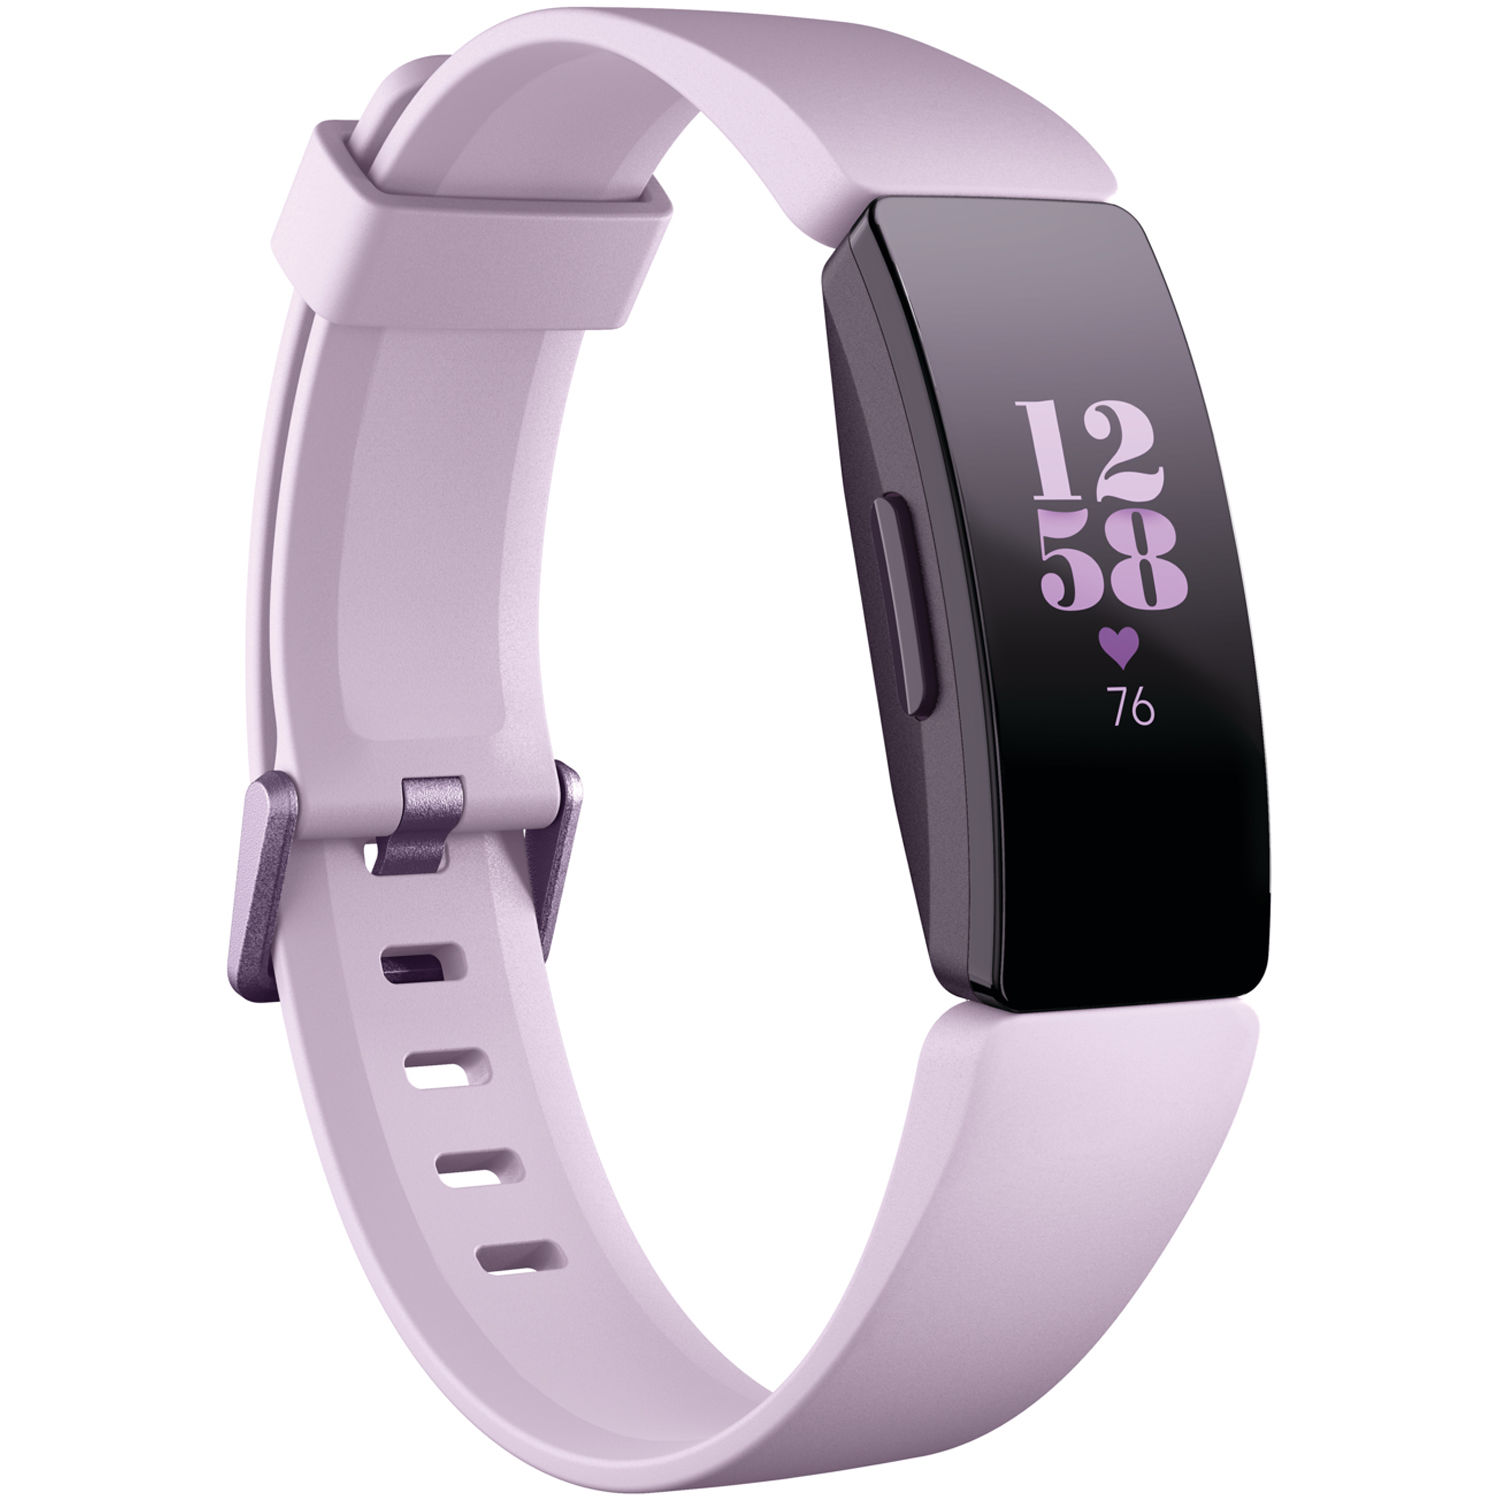 Fitbit Inspire HR Fitness Tracker (Lilac) FB413LVLV B&H Photo